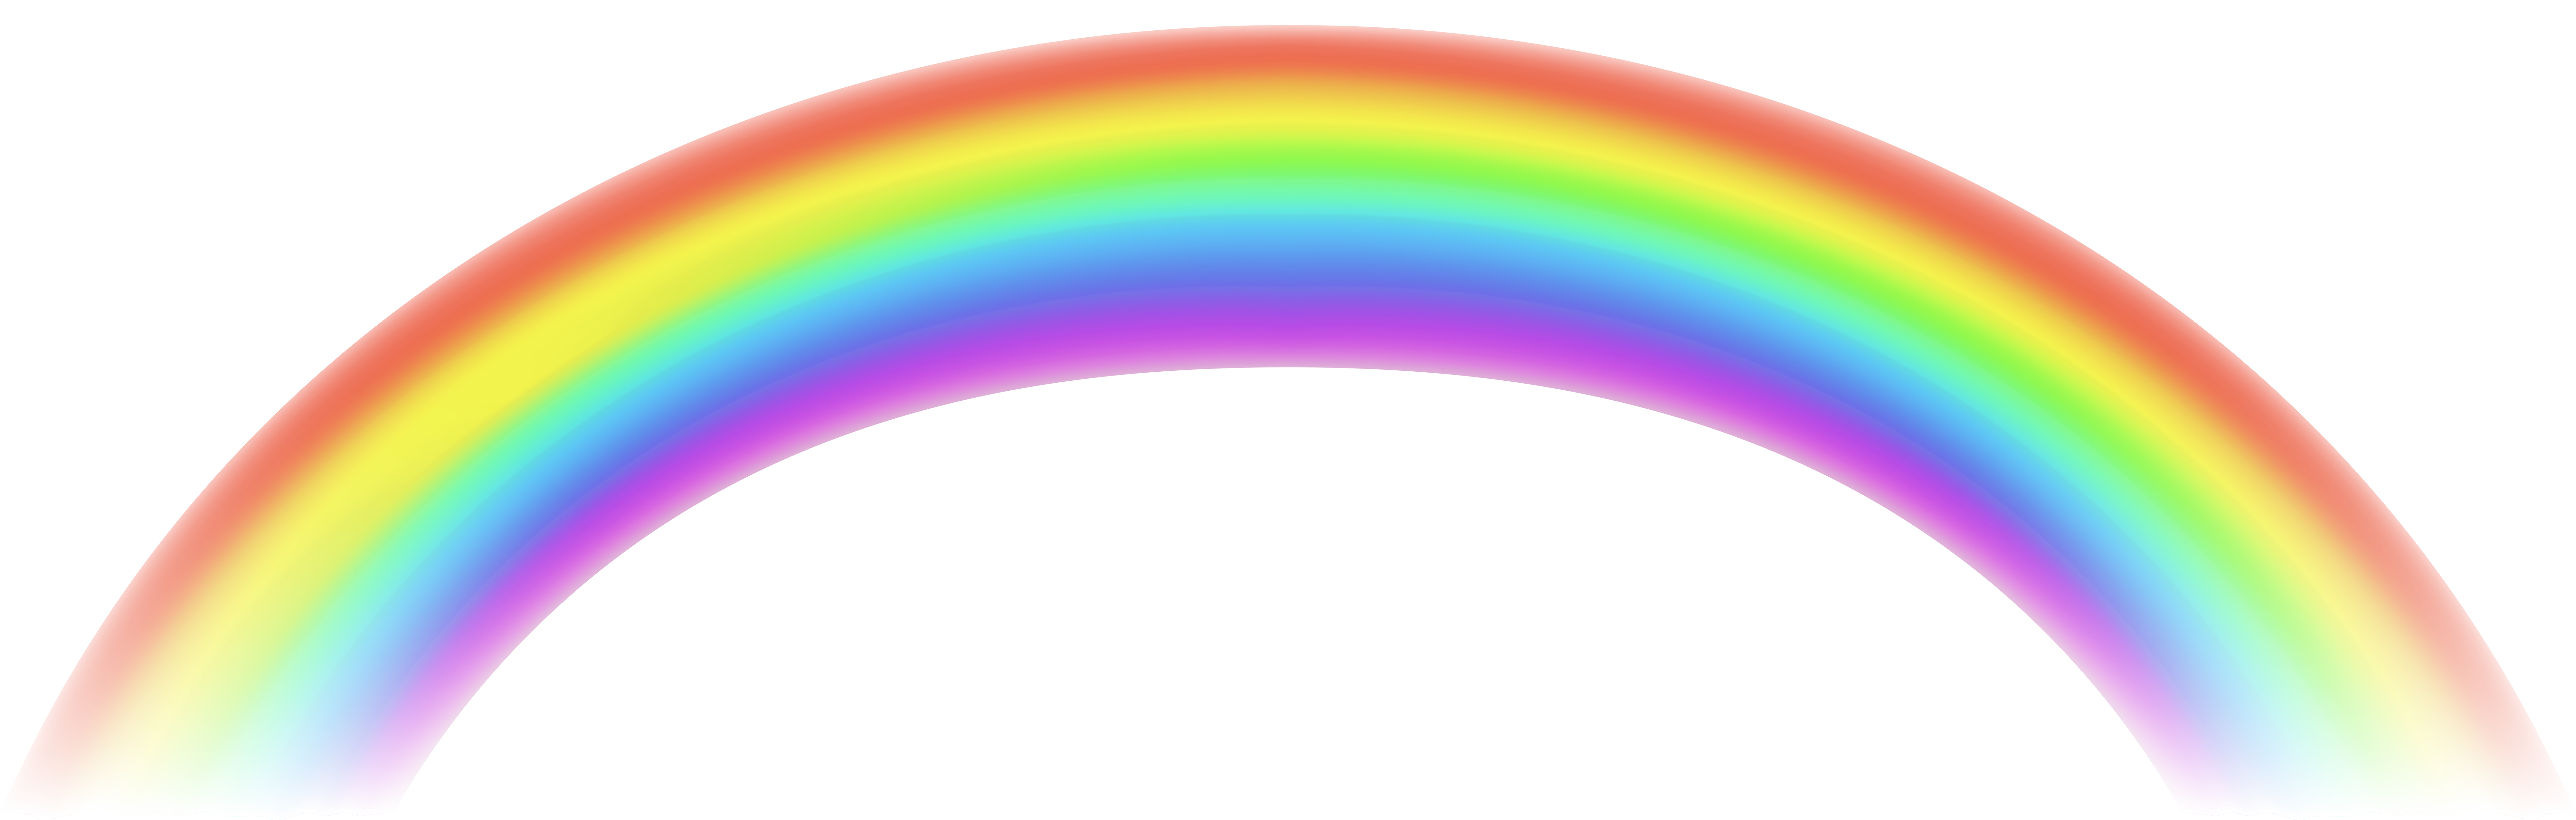 Rainbow Images Free   Free download best Rainbow Images ...